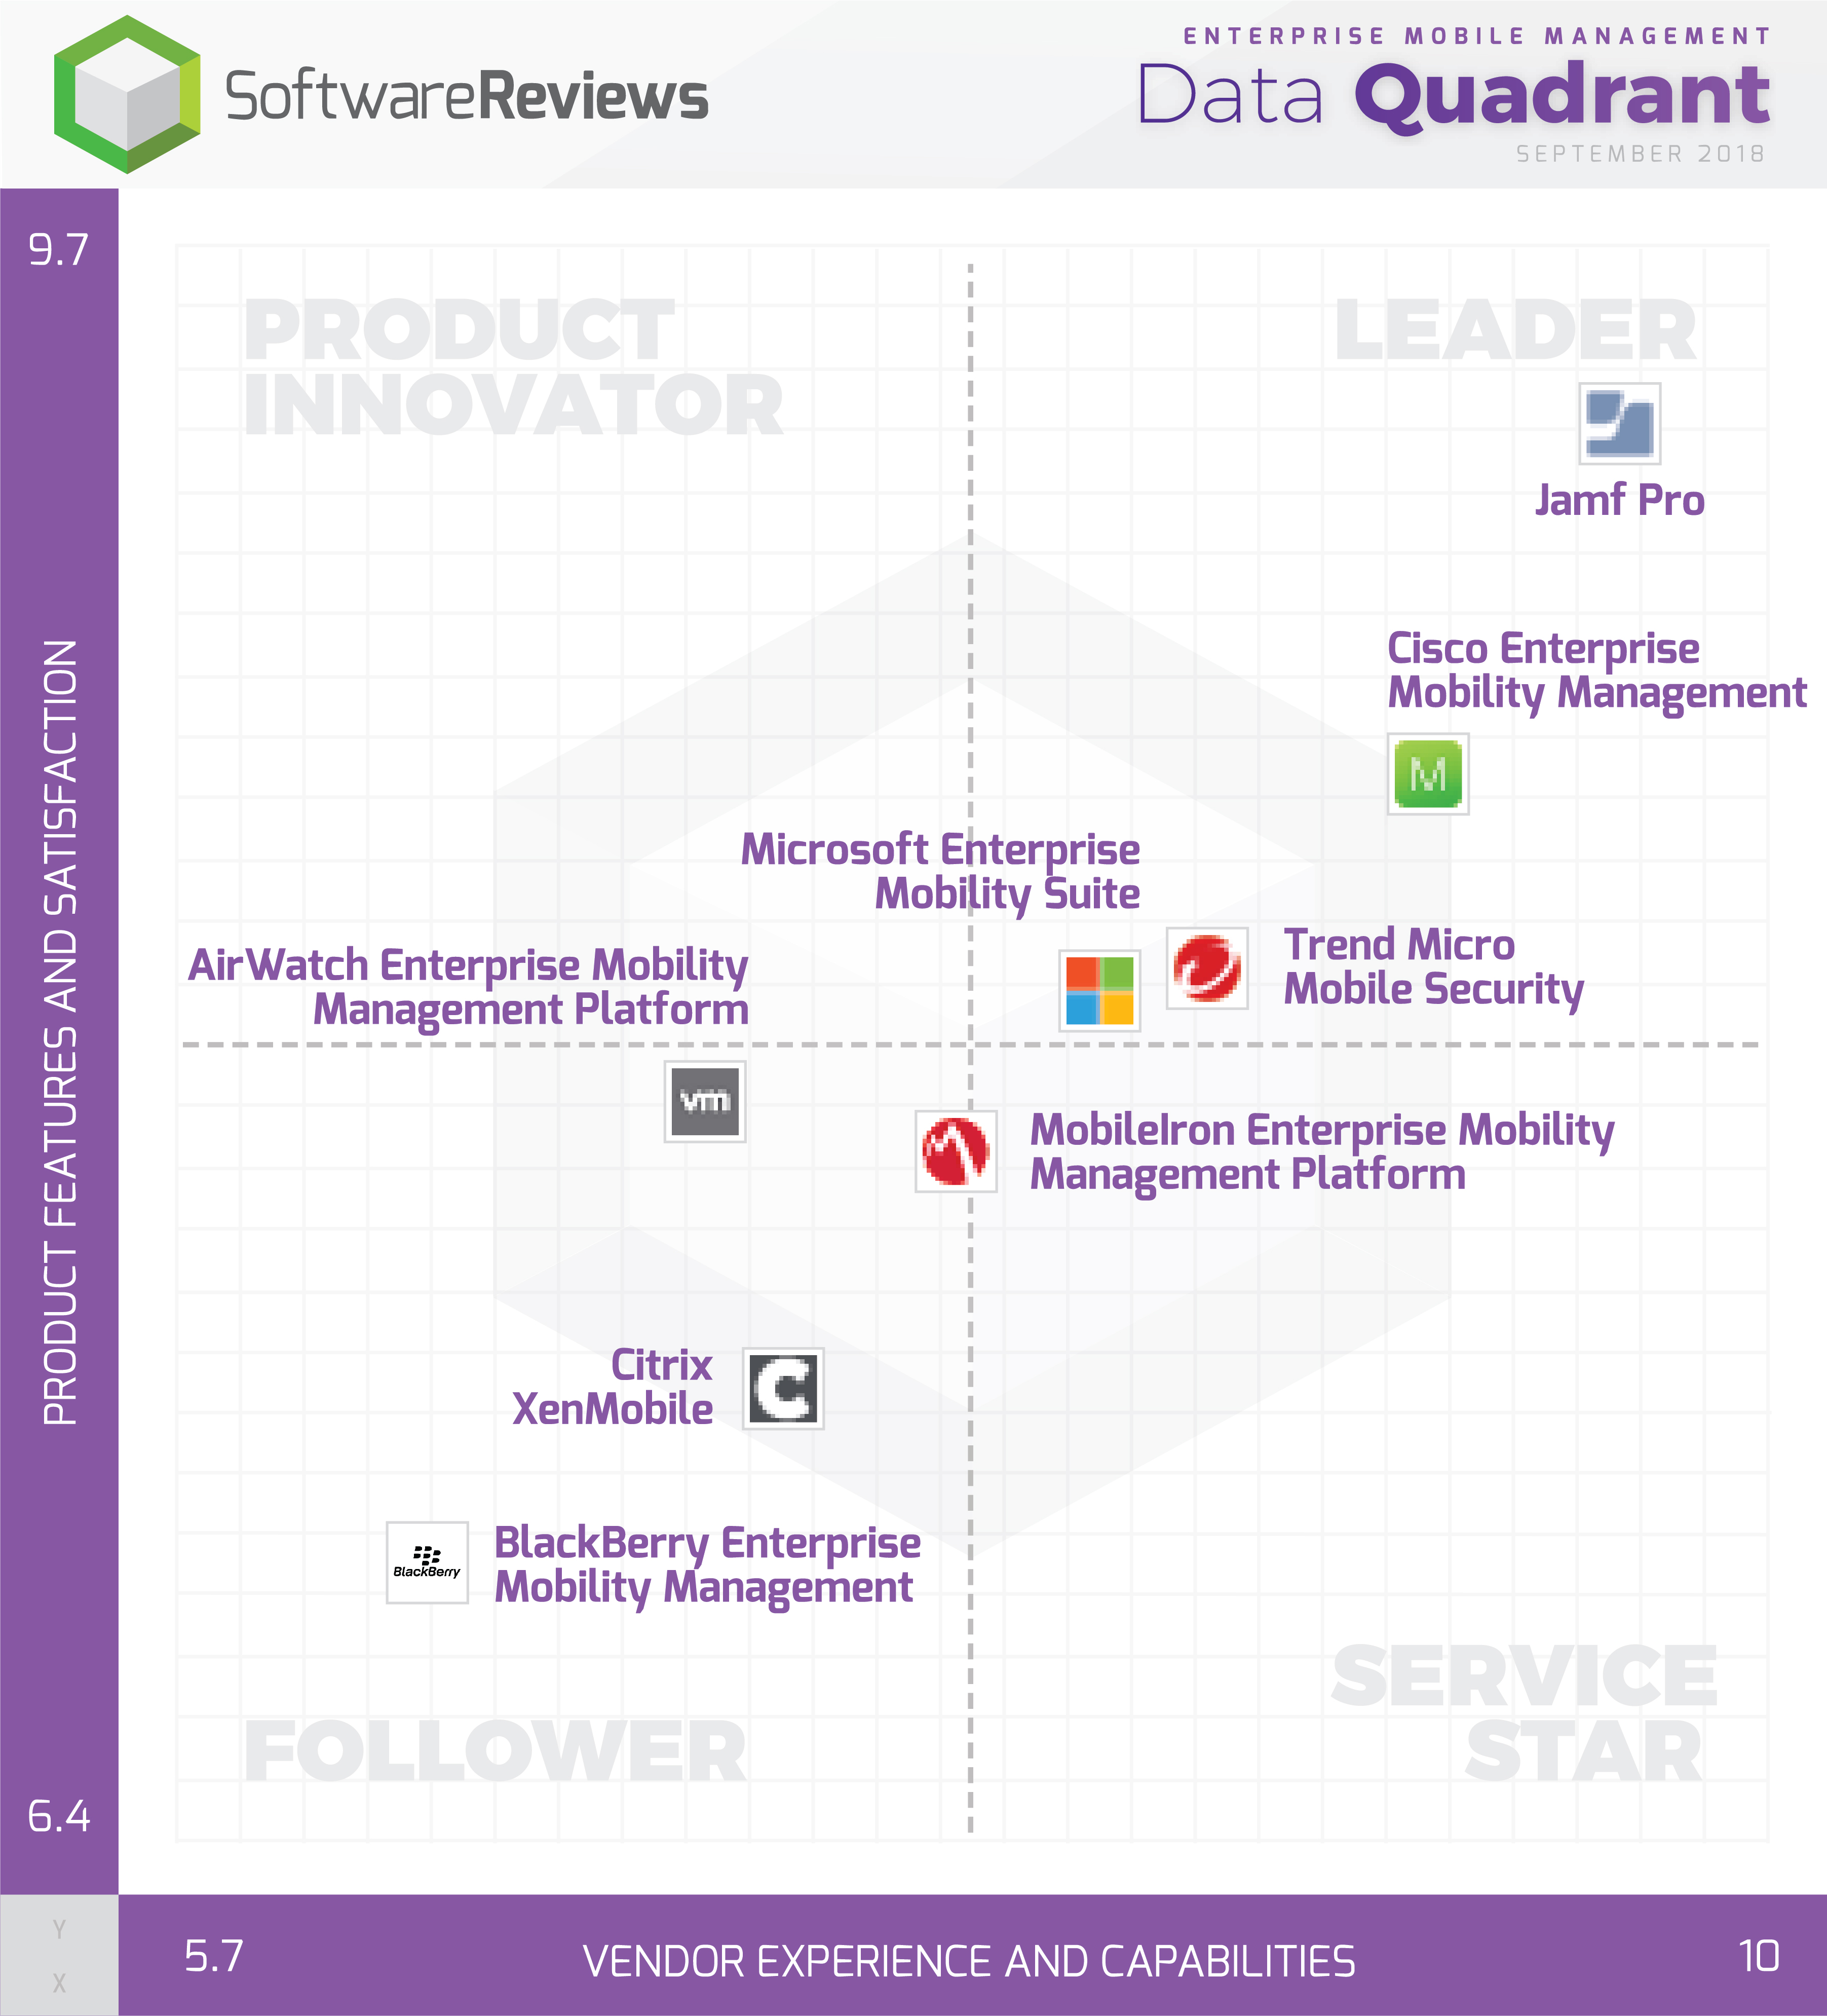 Enterprise Mobile Management Data Quadrant